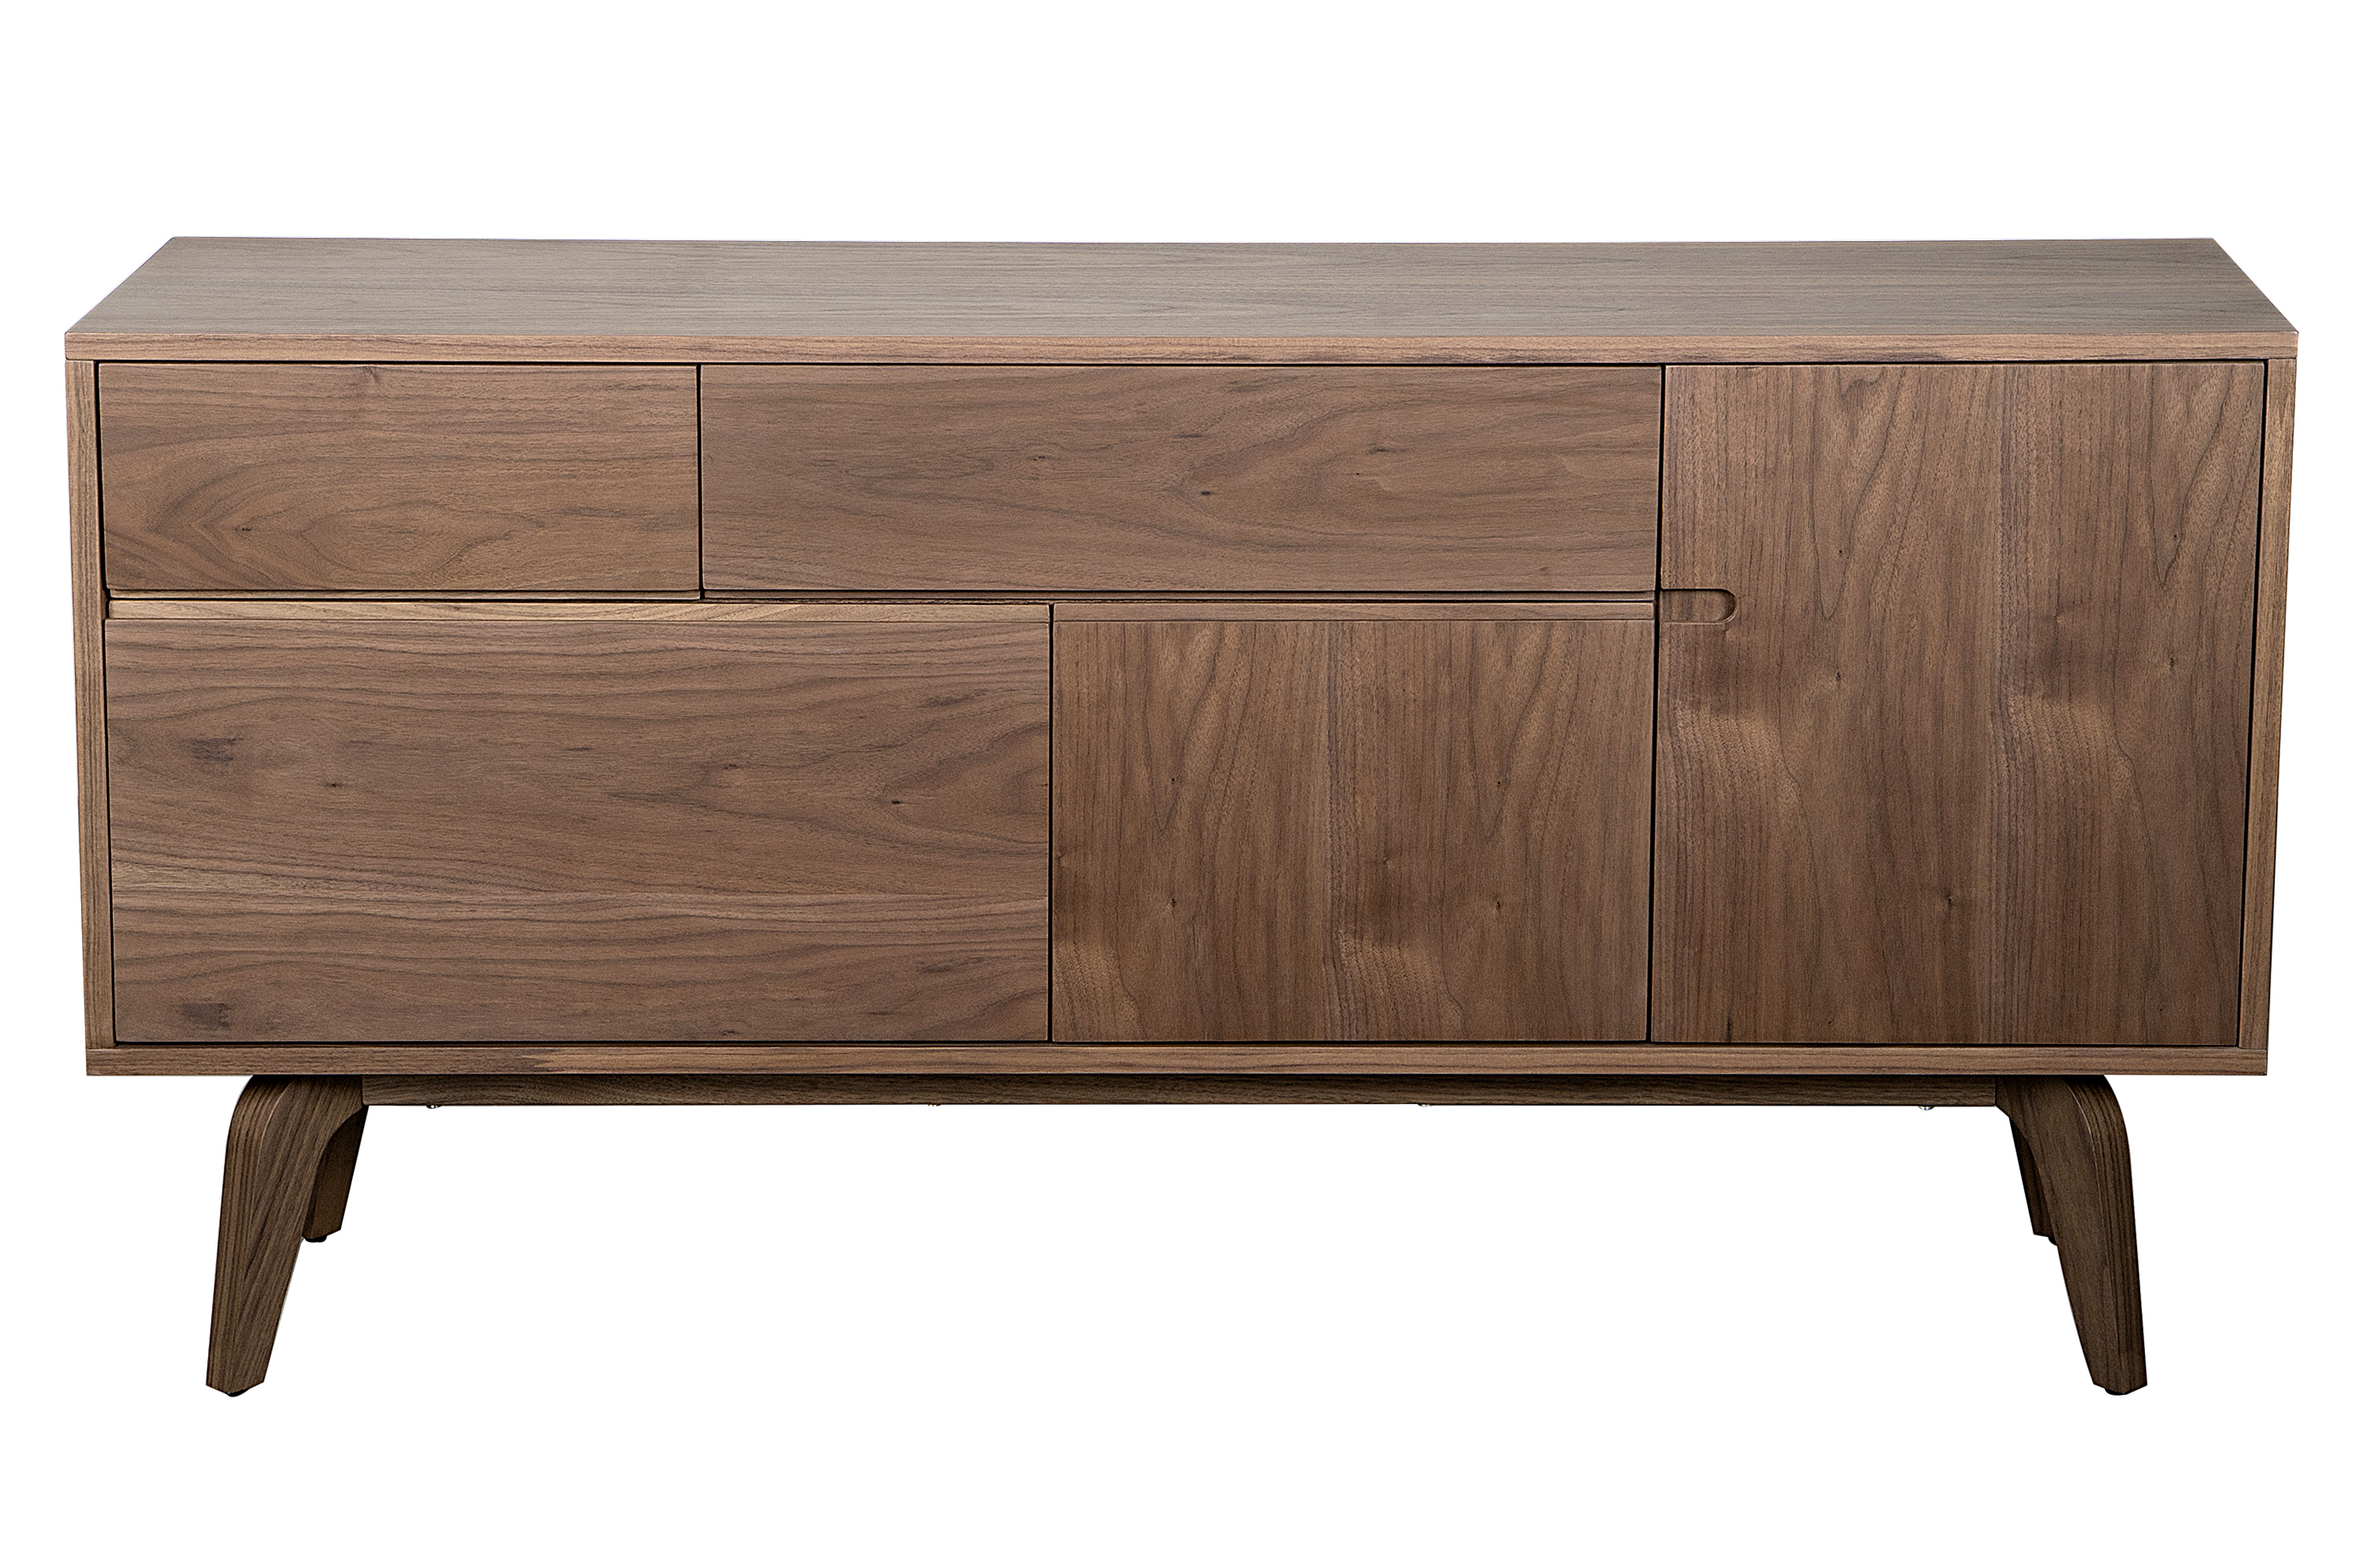 Euro Style Lawrence sideboard